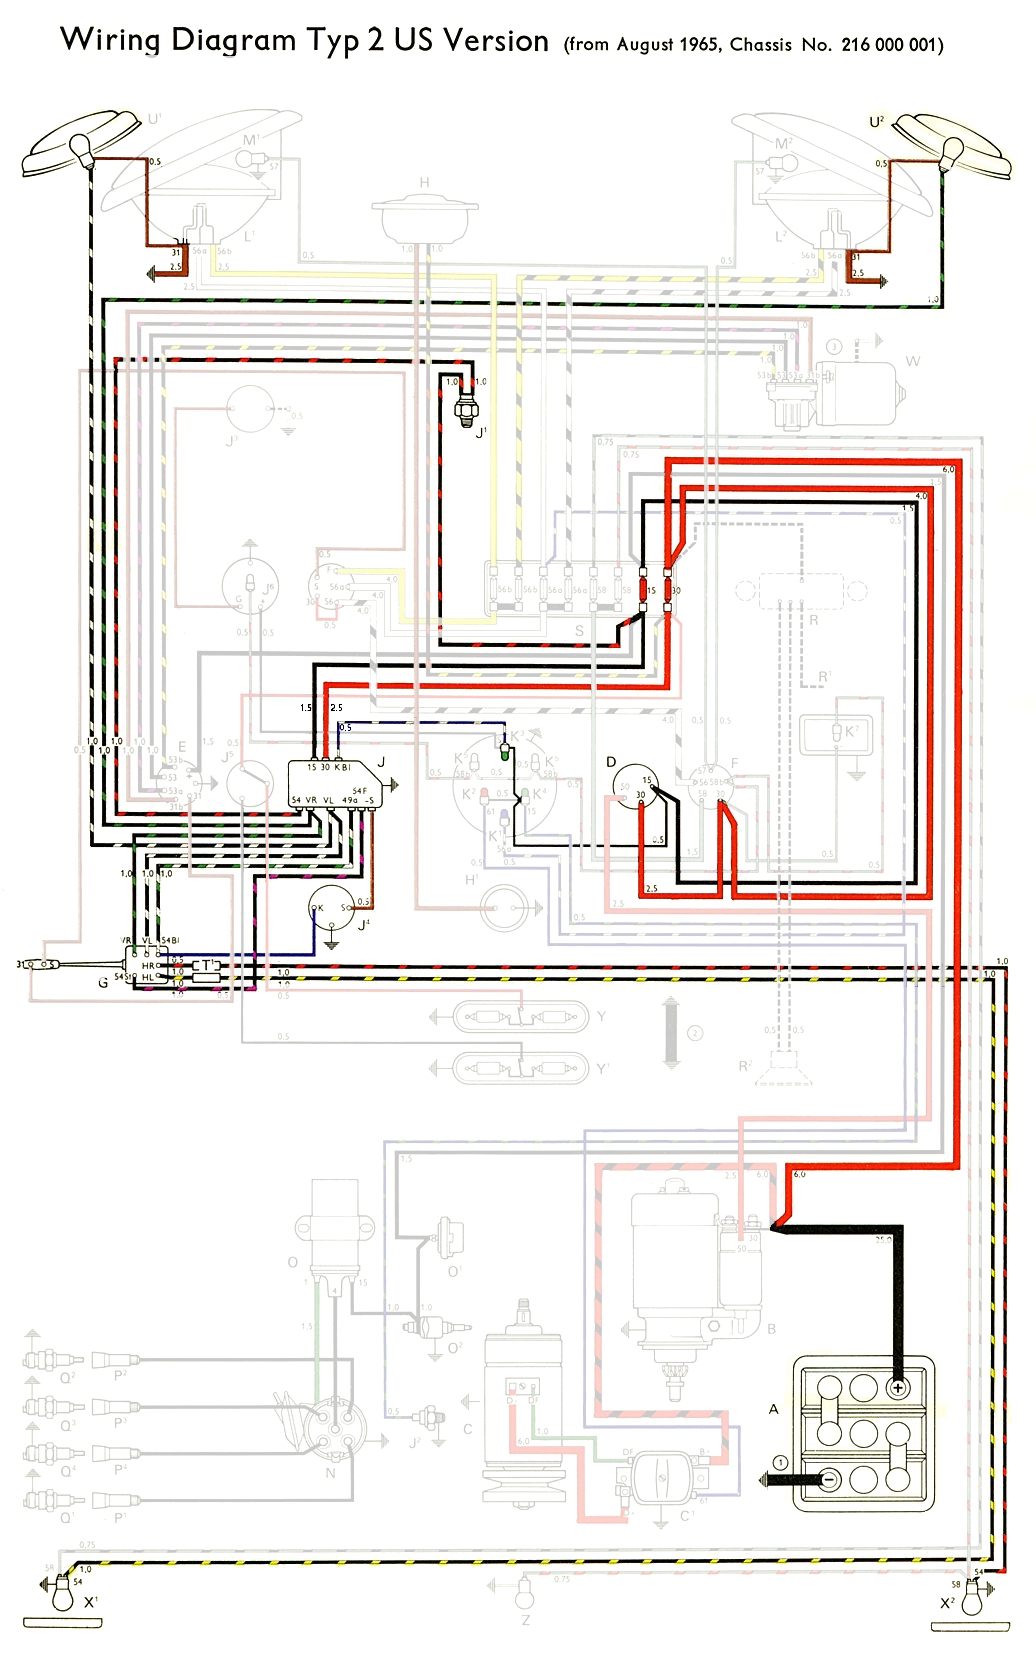 flasher wiring diagram for 1969 pontiac gto flasher wiring flasher wiring diagram for 1969 pontiac gto thesamba com type 2 wiring diagrams